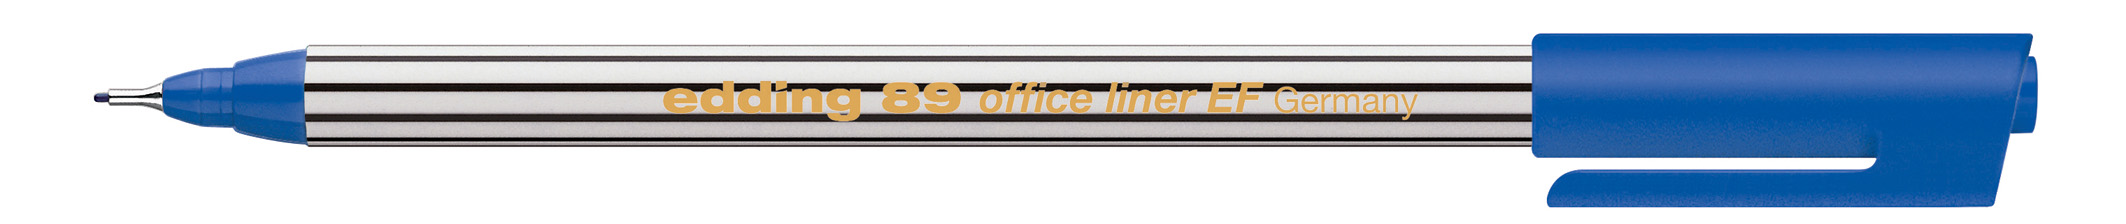 89 office liner EF - 0,3 mm, blau